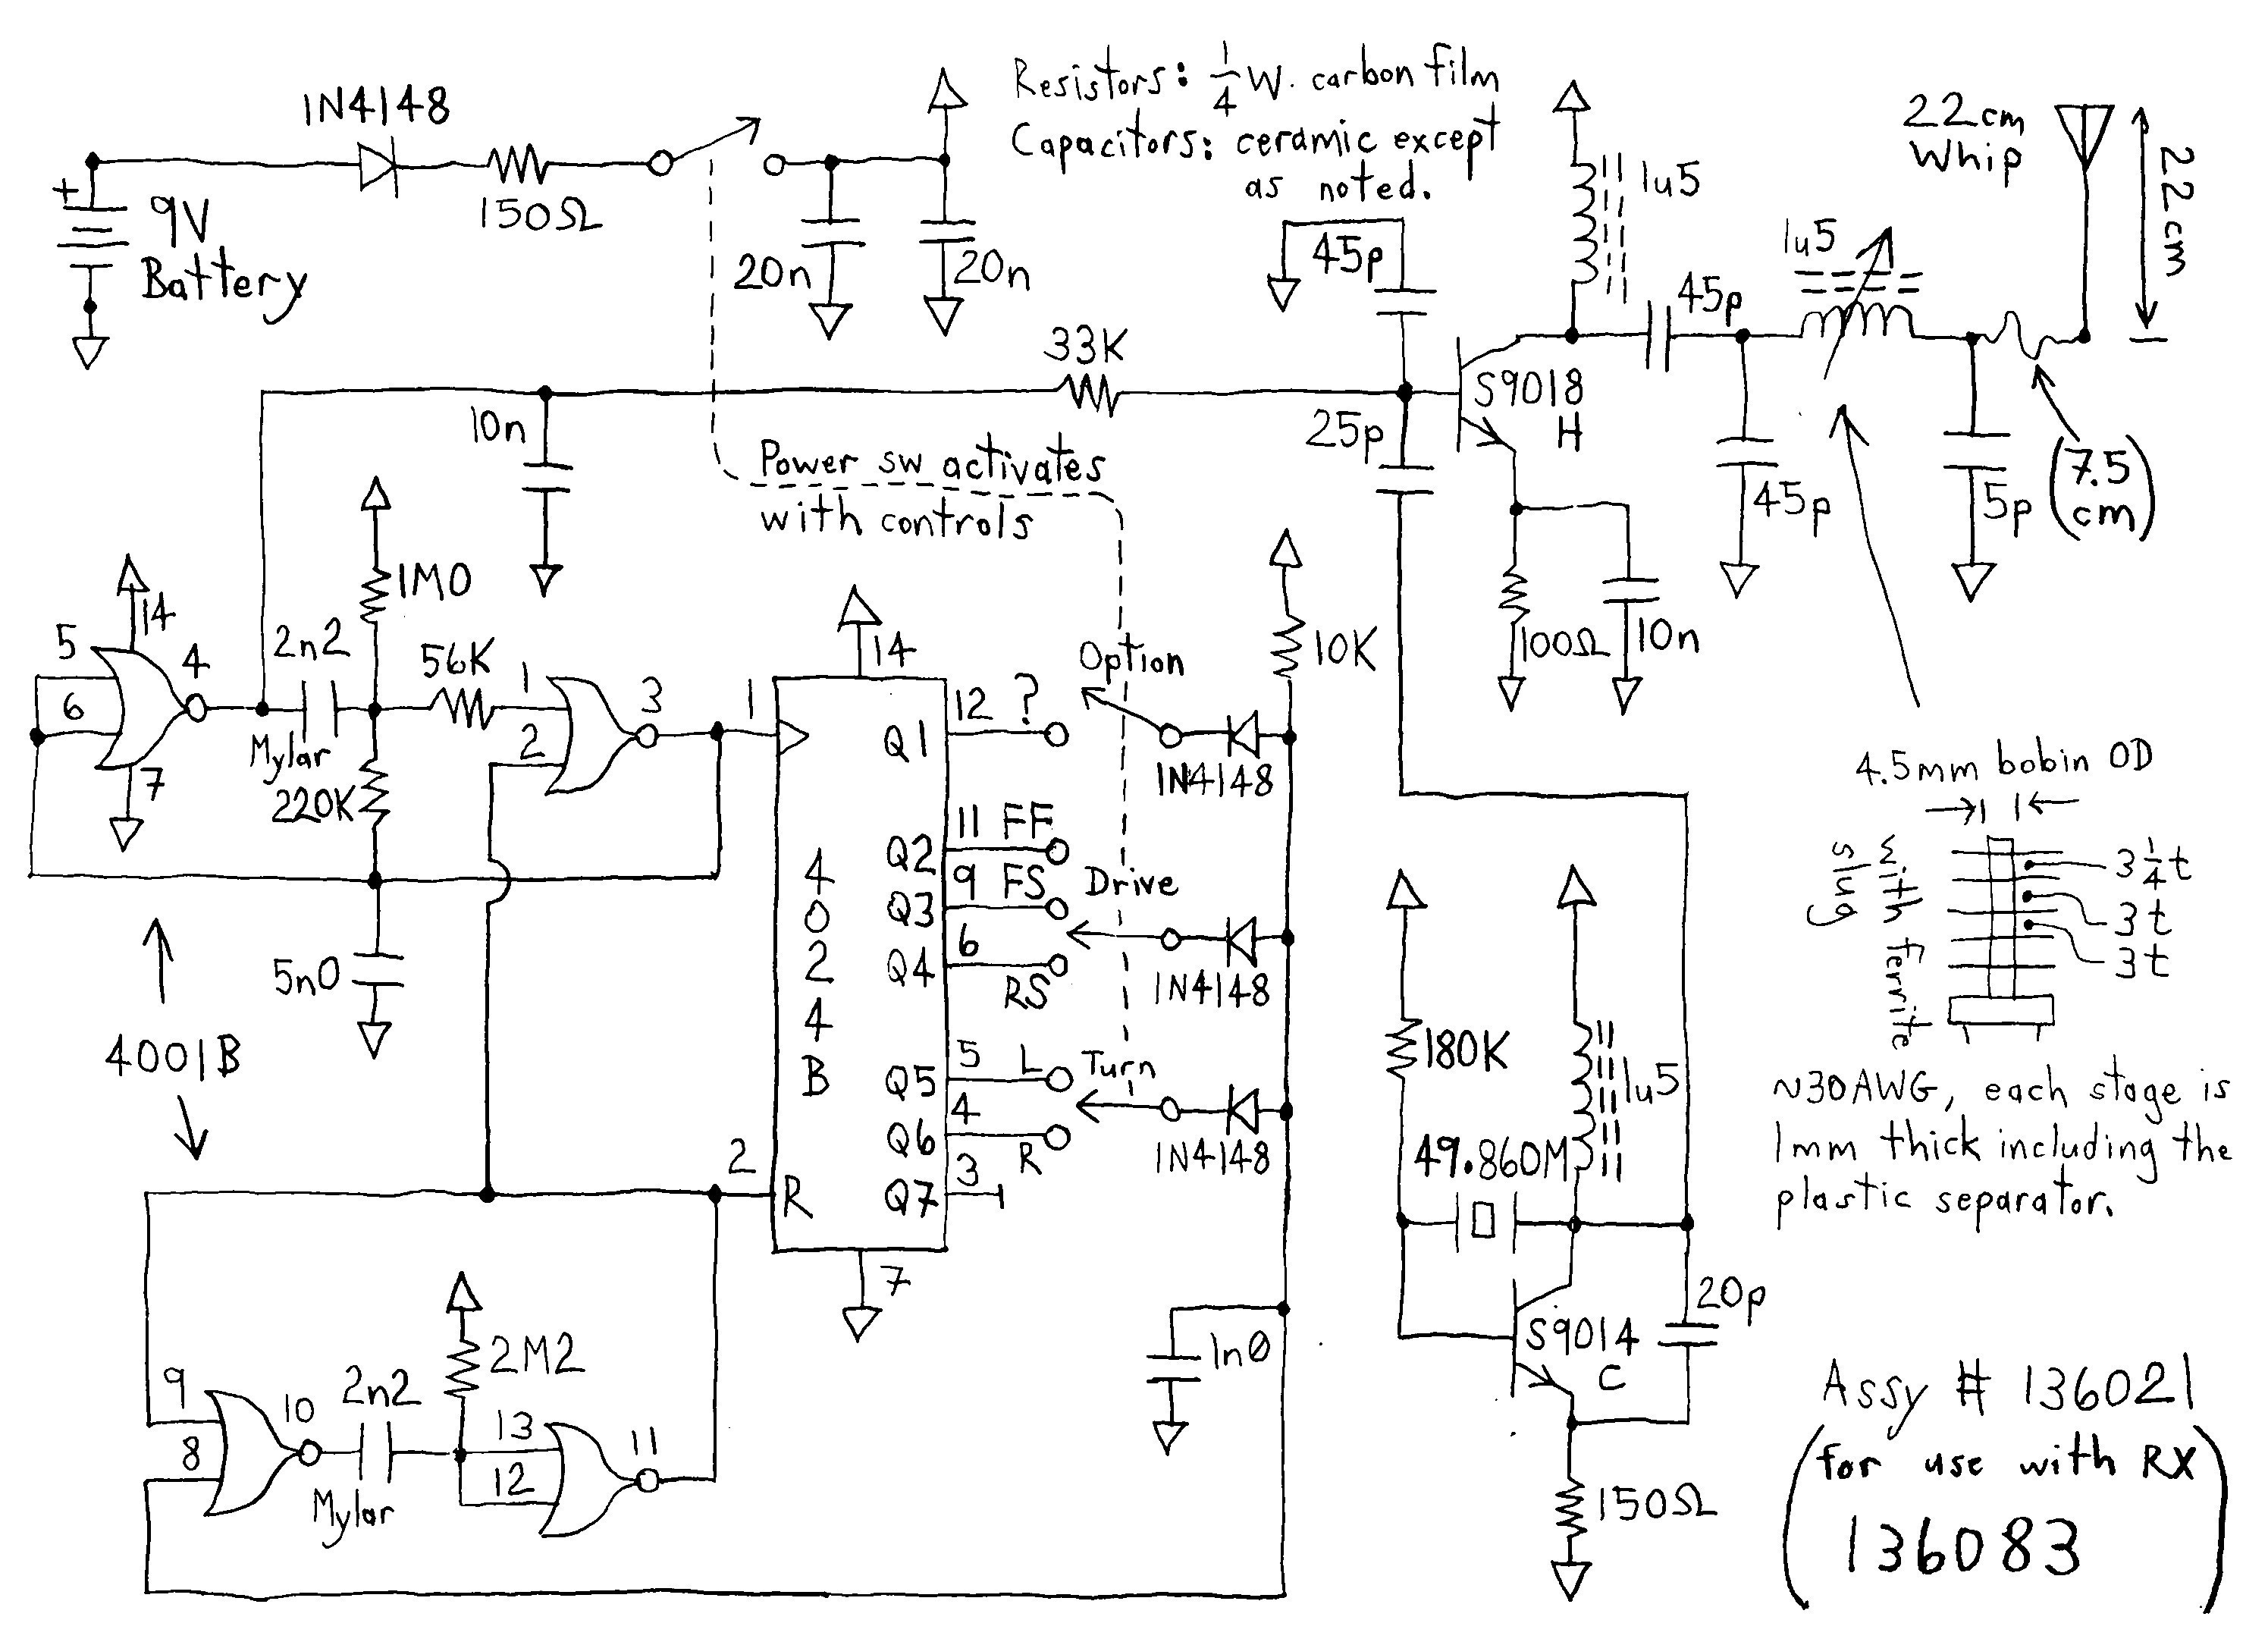 Led Tube Wiring Diagram Auto Diagrams Instructions Led Wiring Diagram Car Refrence For Interior Lights